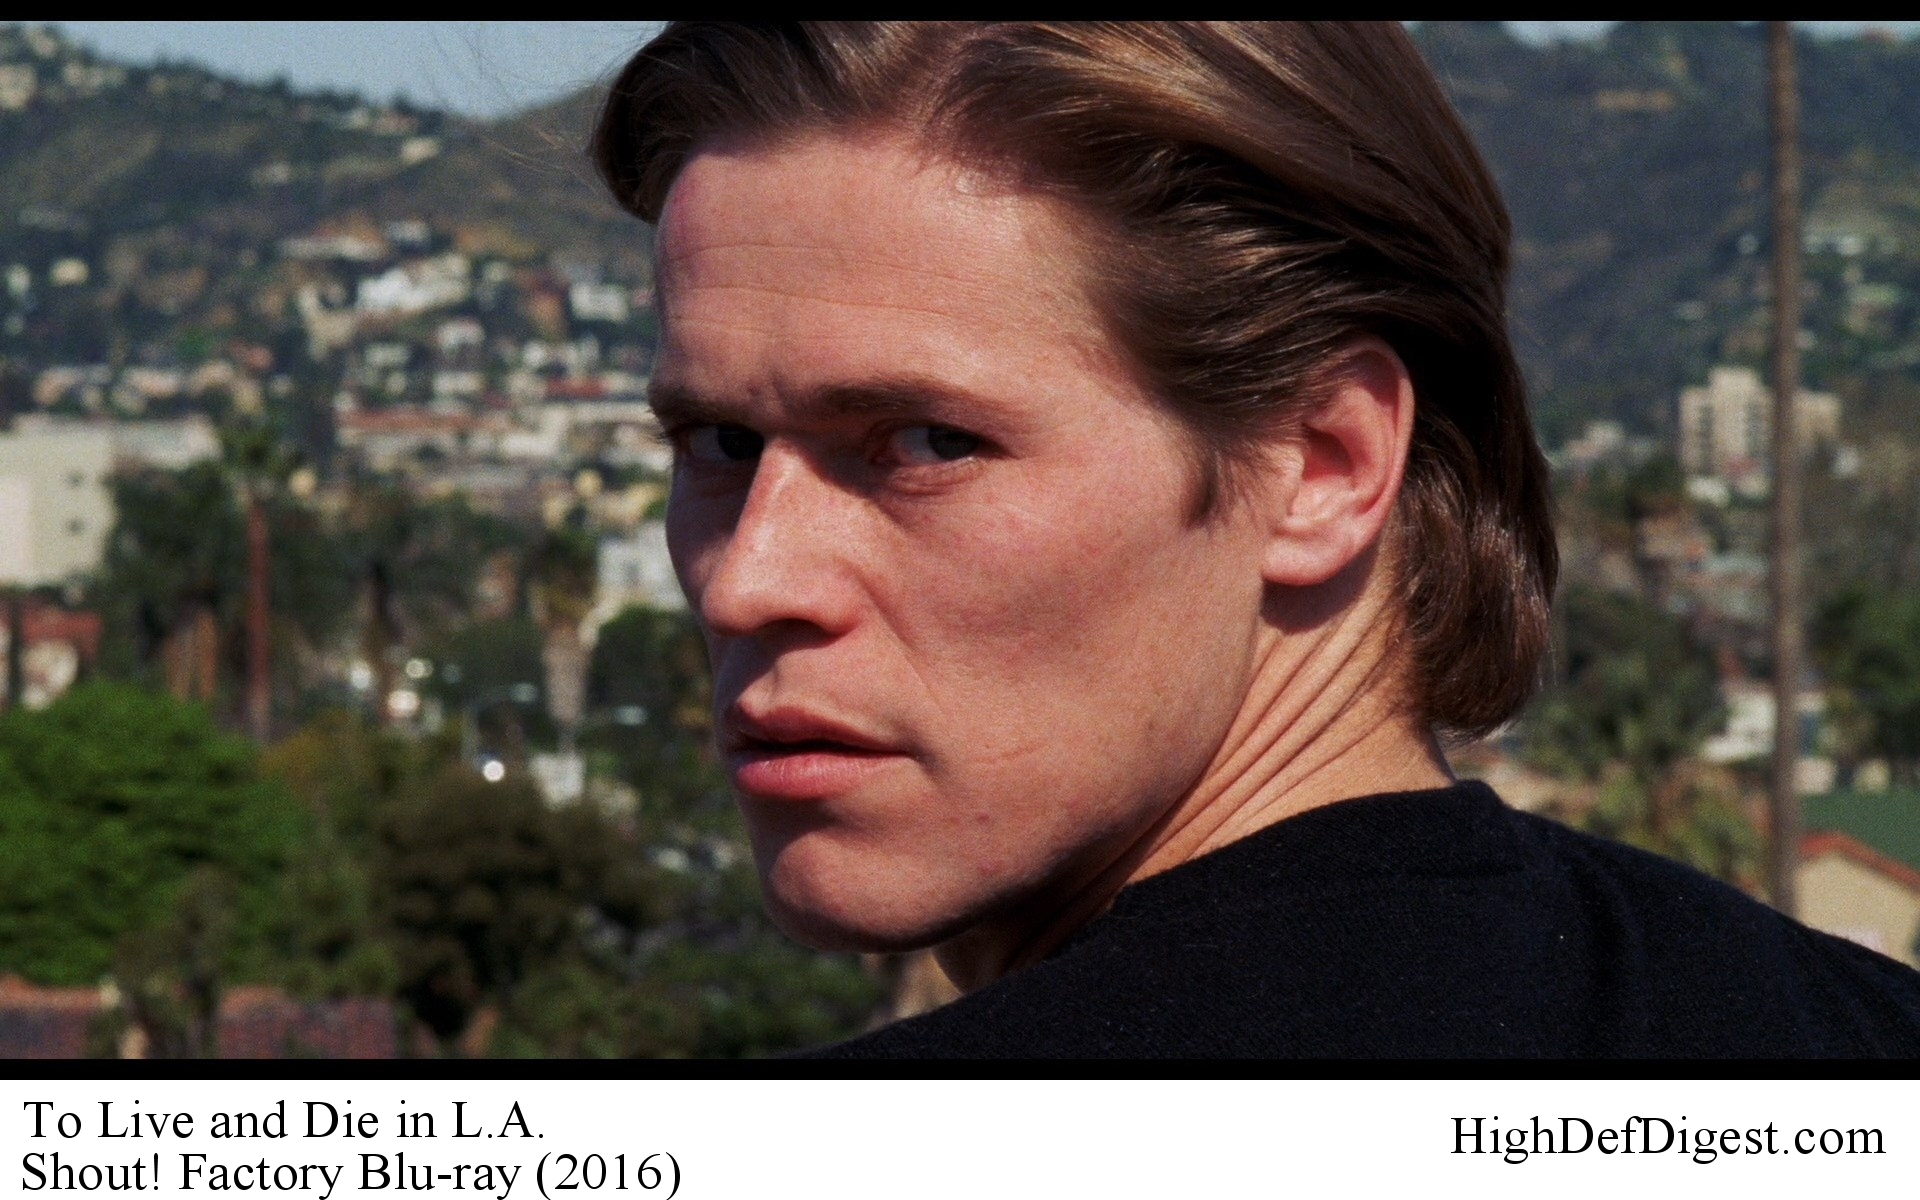 To Live and Die in L.A. - Willem Dafoe Shout! Factory